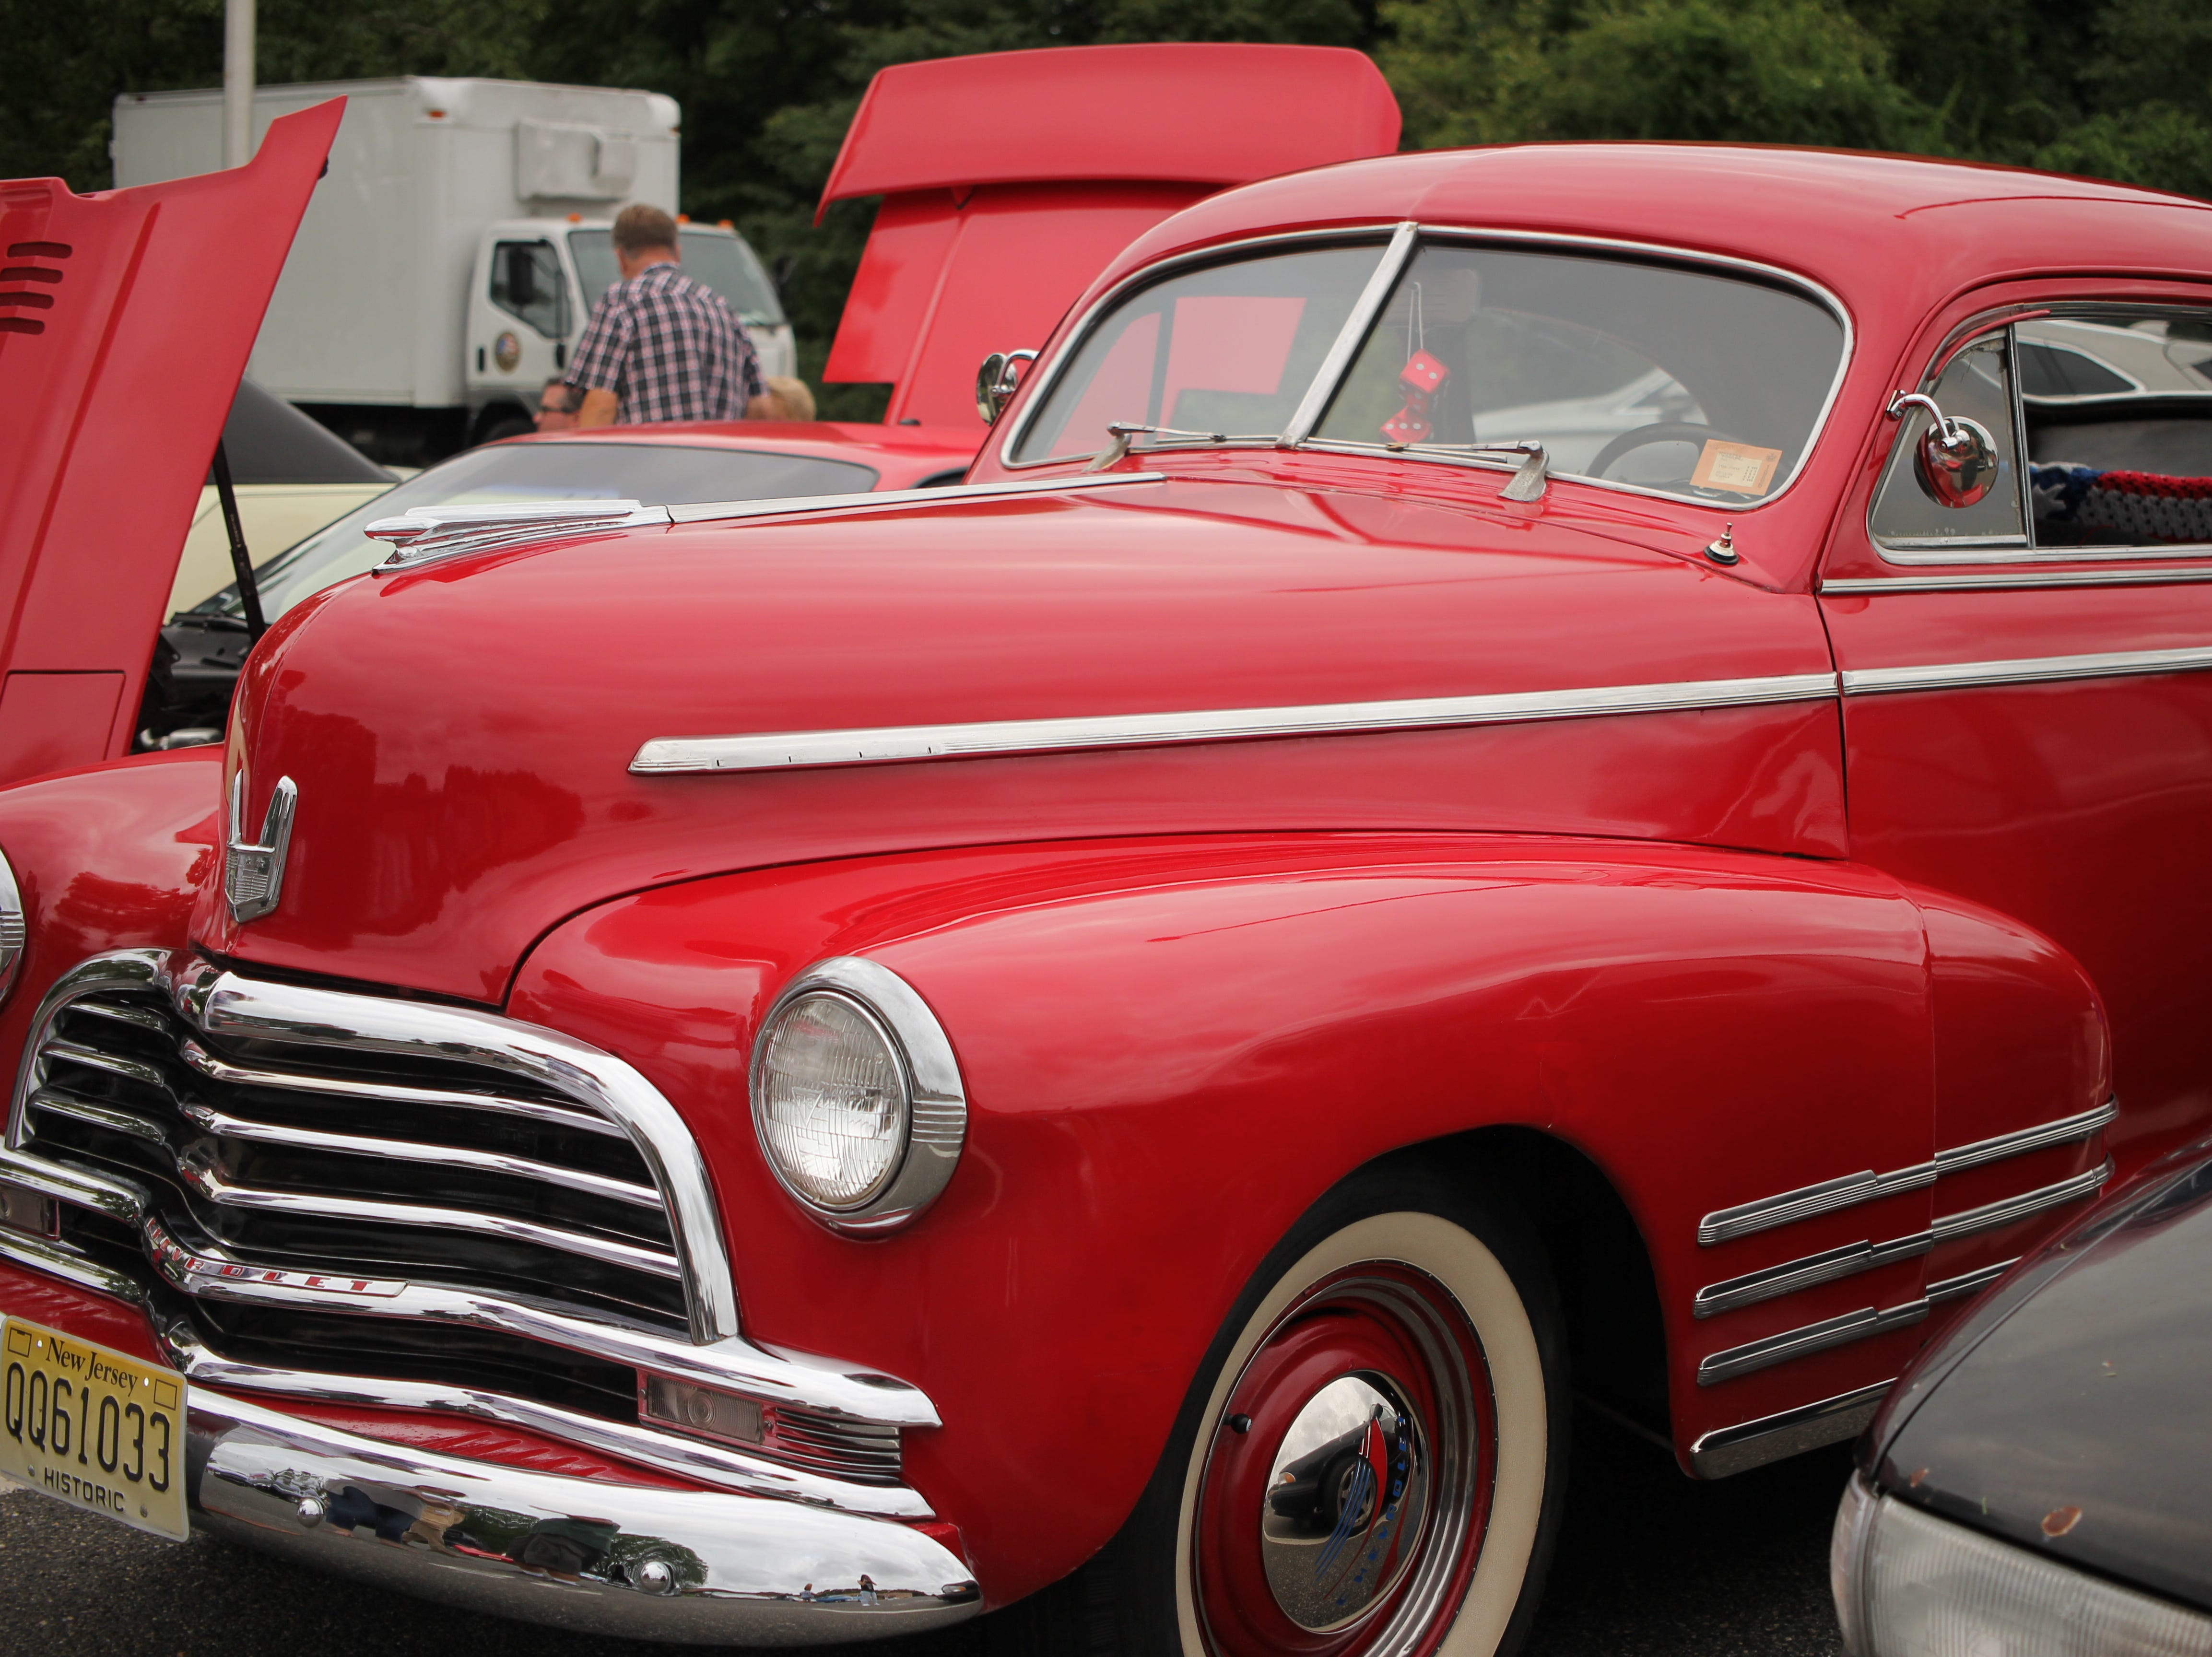 1946 Chevrolet Fleetline, owned by Sal Friscia of Manalapan